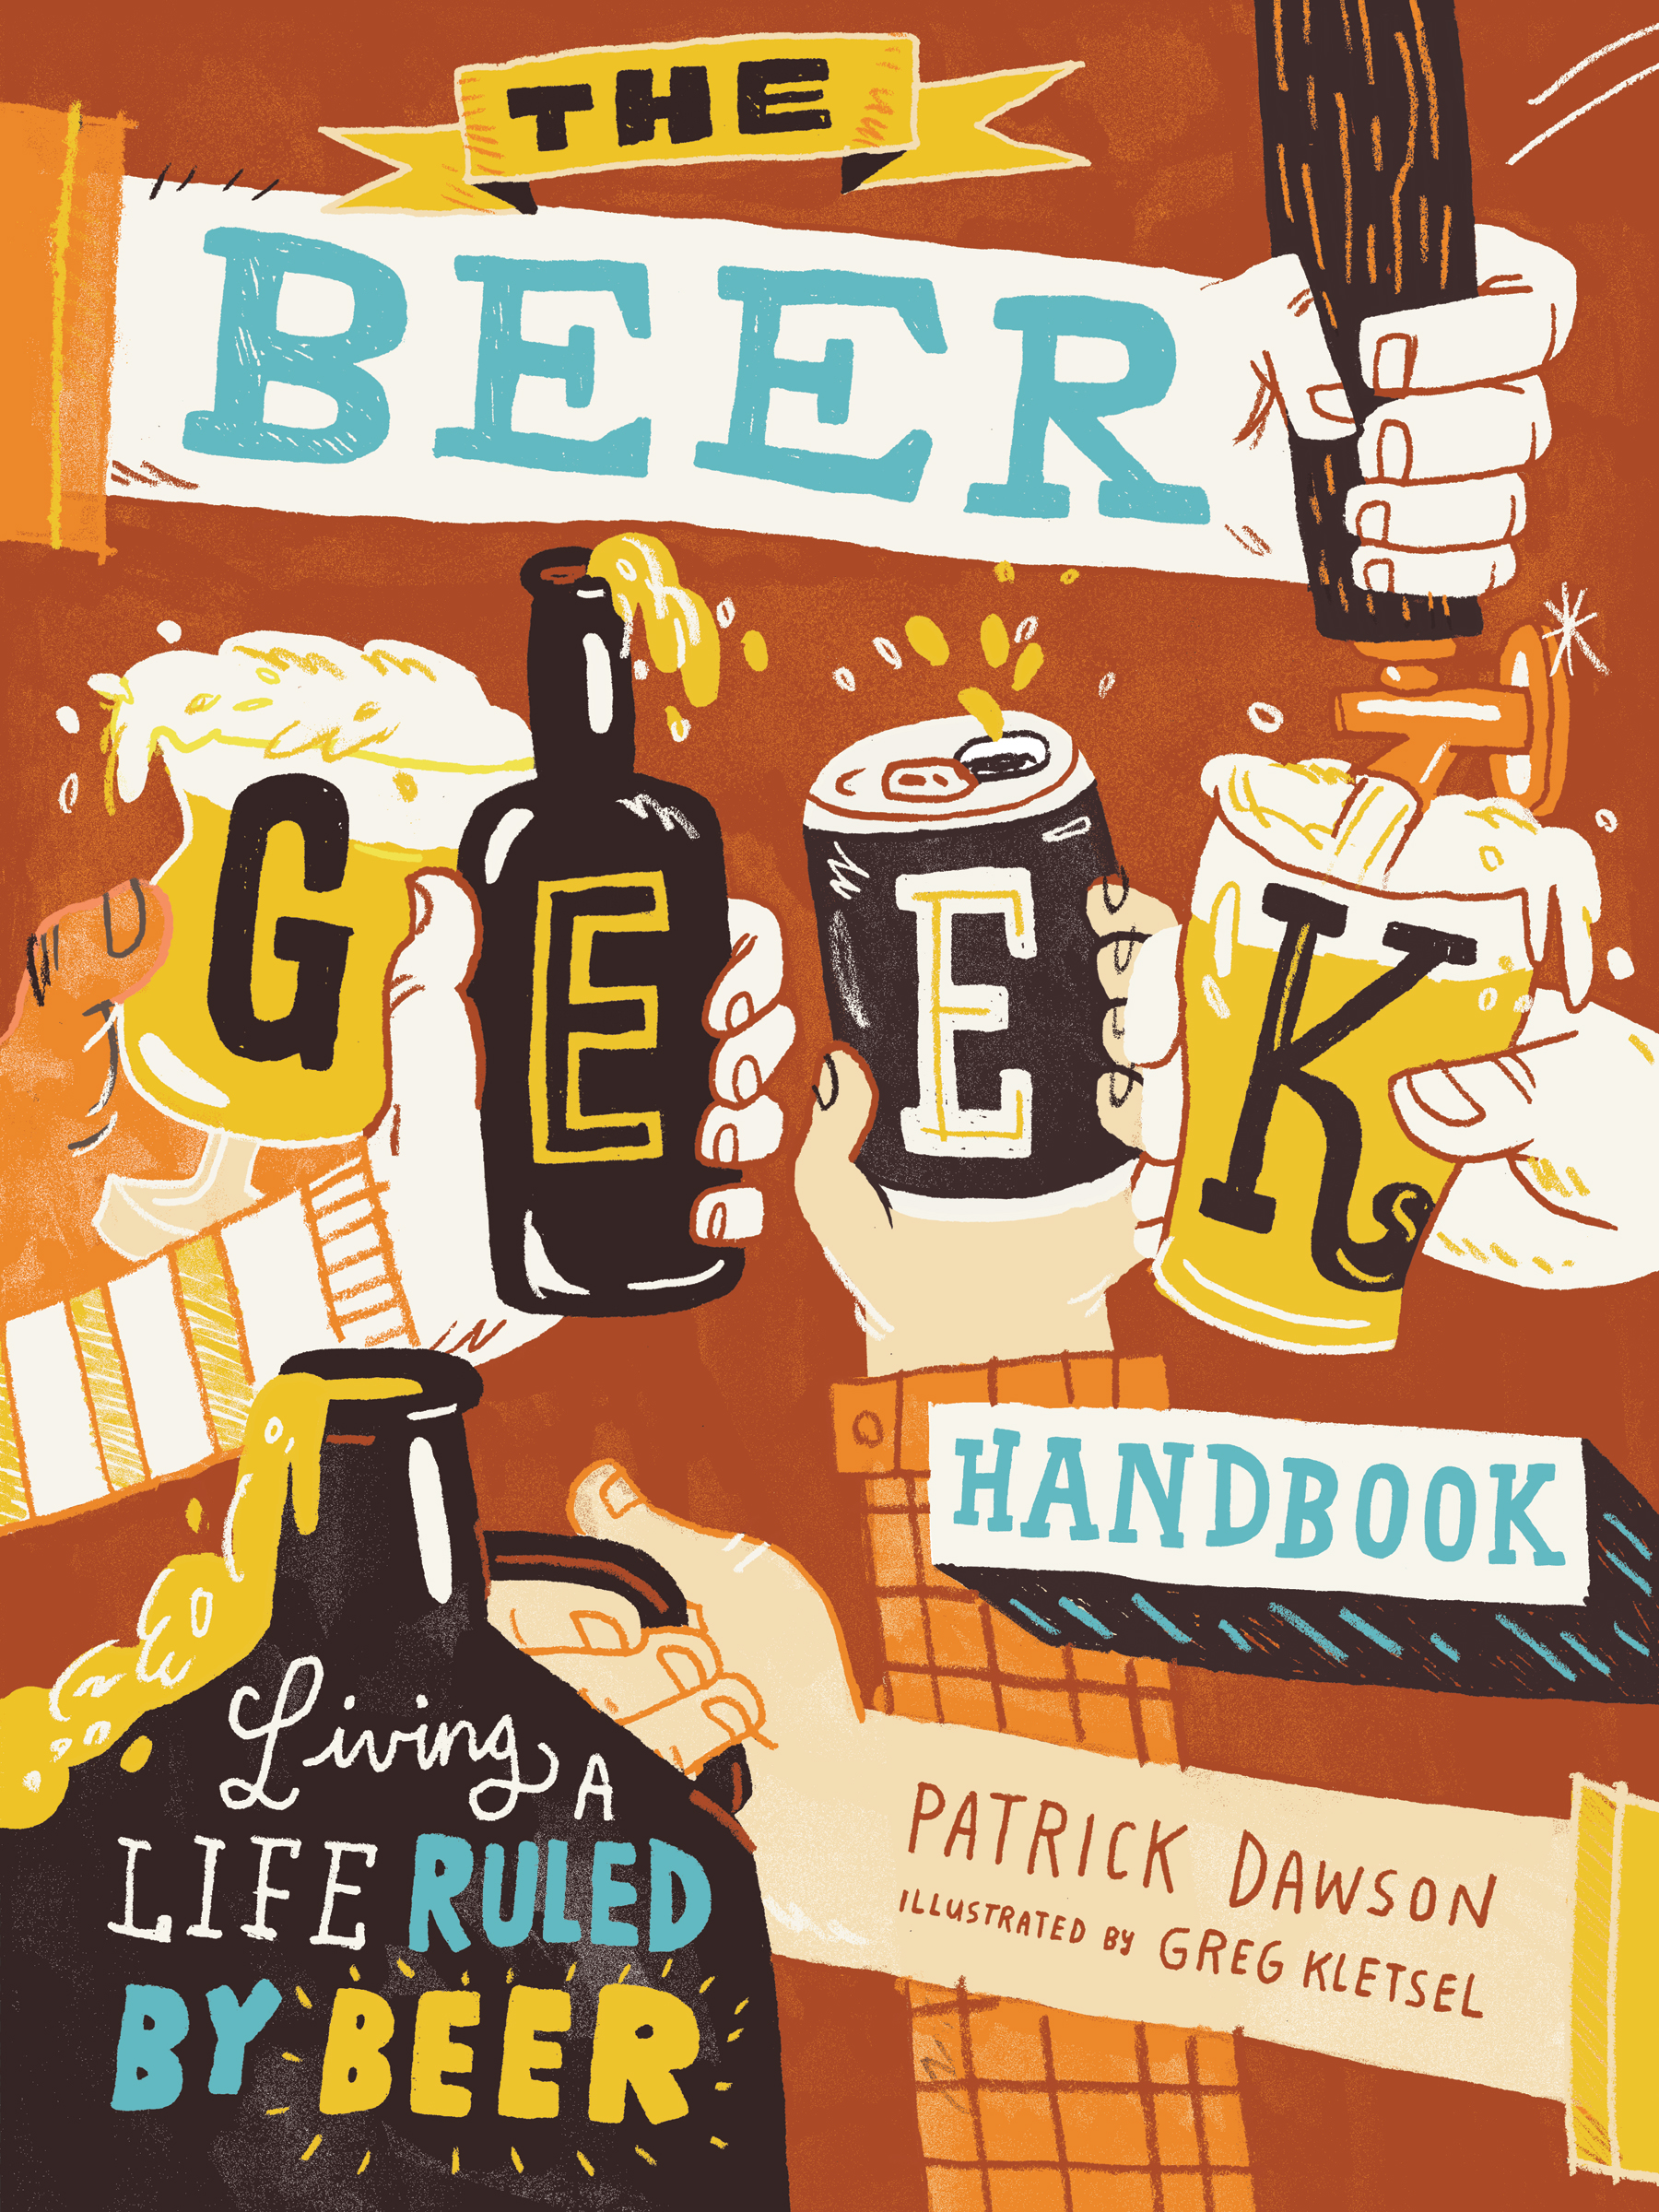 The Beer Geek Handbook Living a Life Ruled by Beer - Patrick Dawson